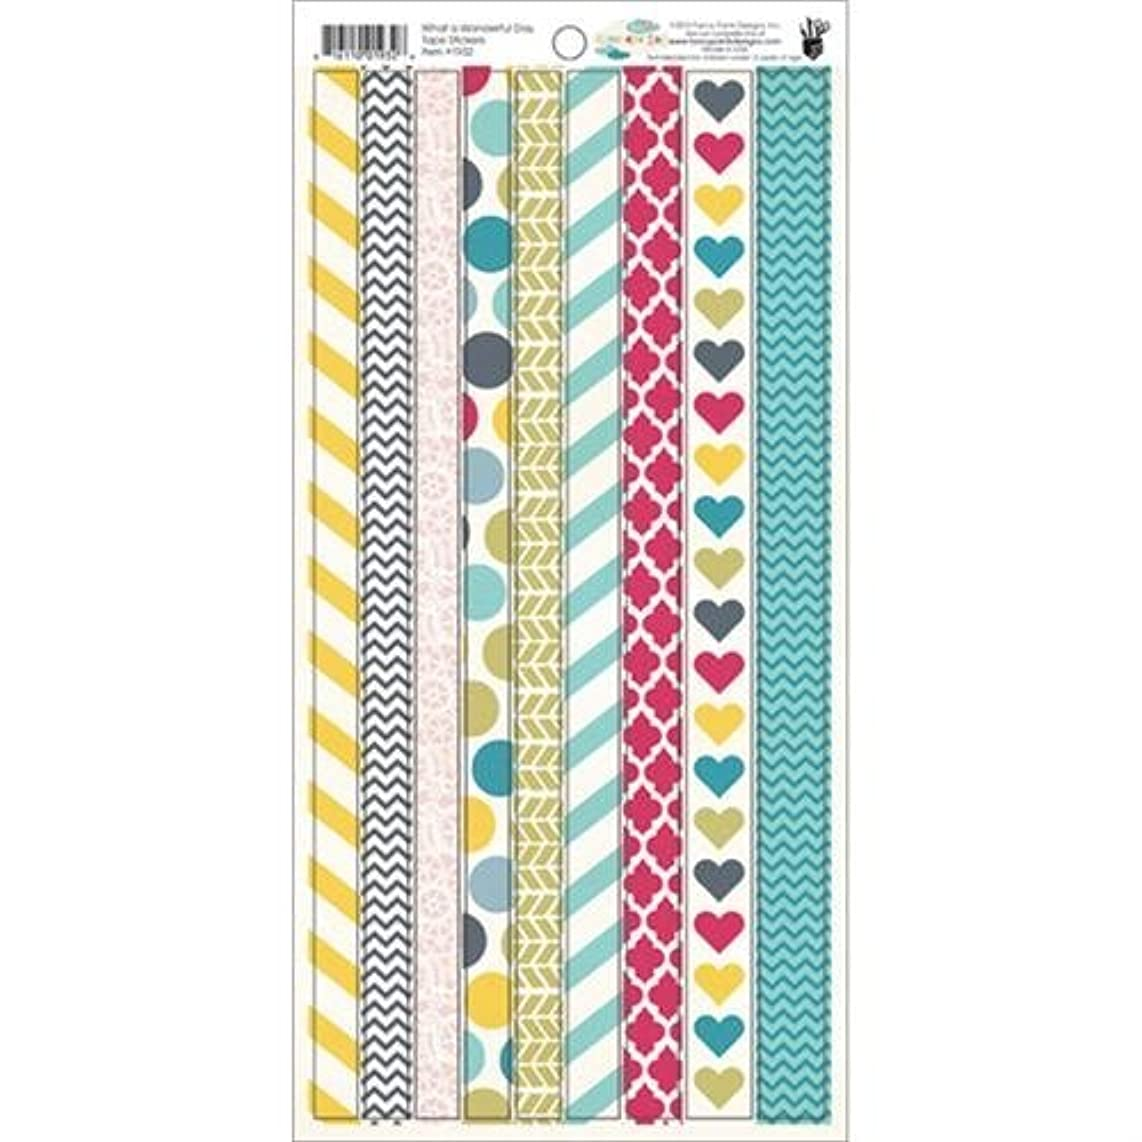 Fancy Pants What A Wonderful Day 6x12 Tape Stickers